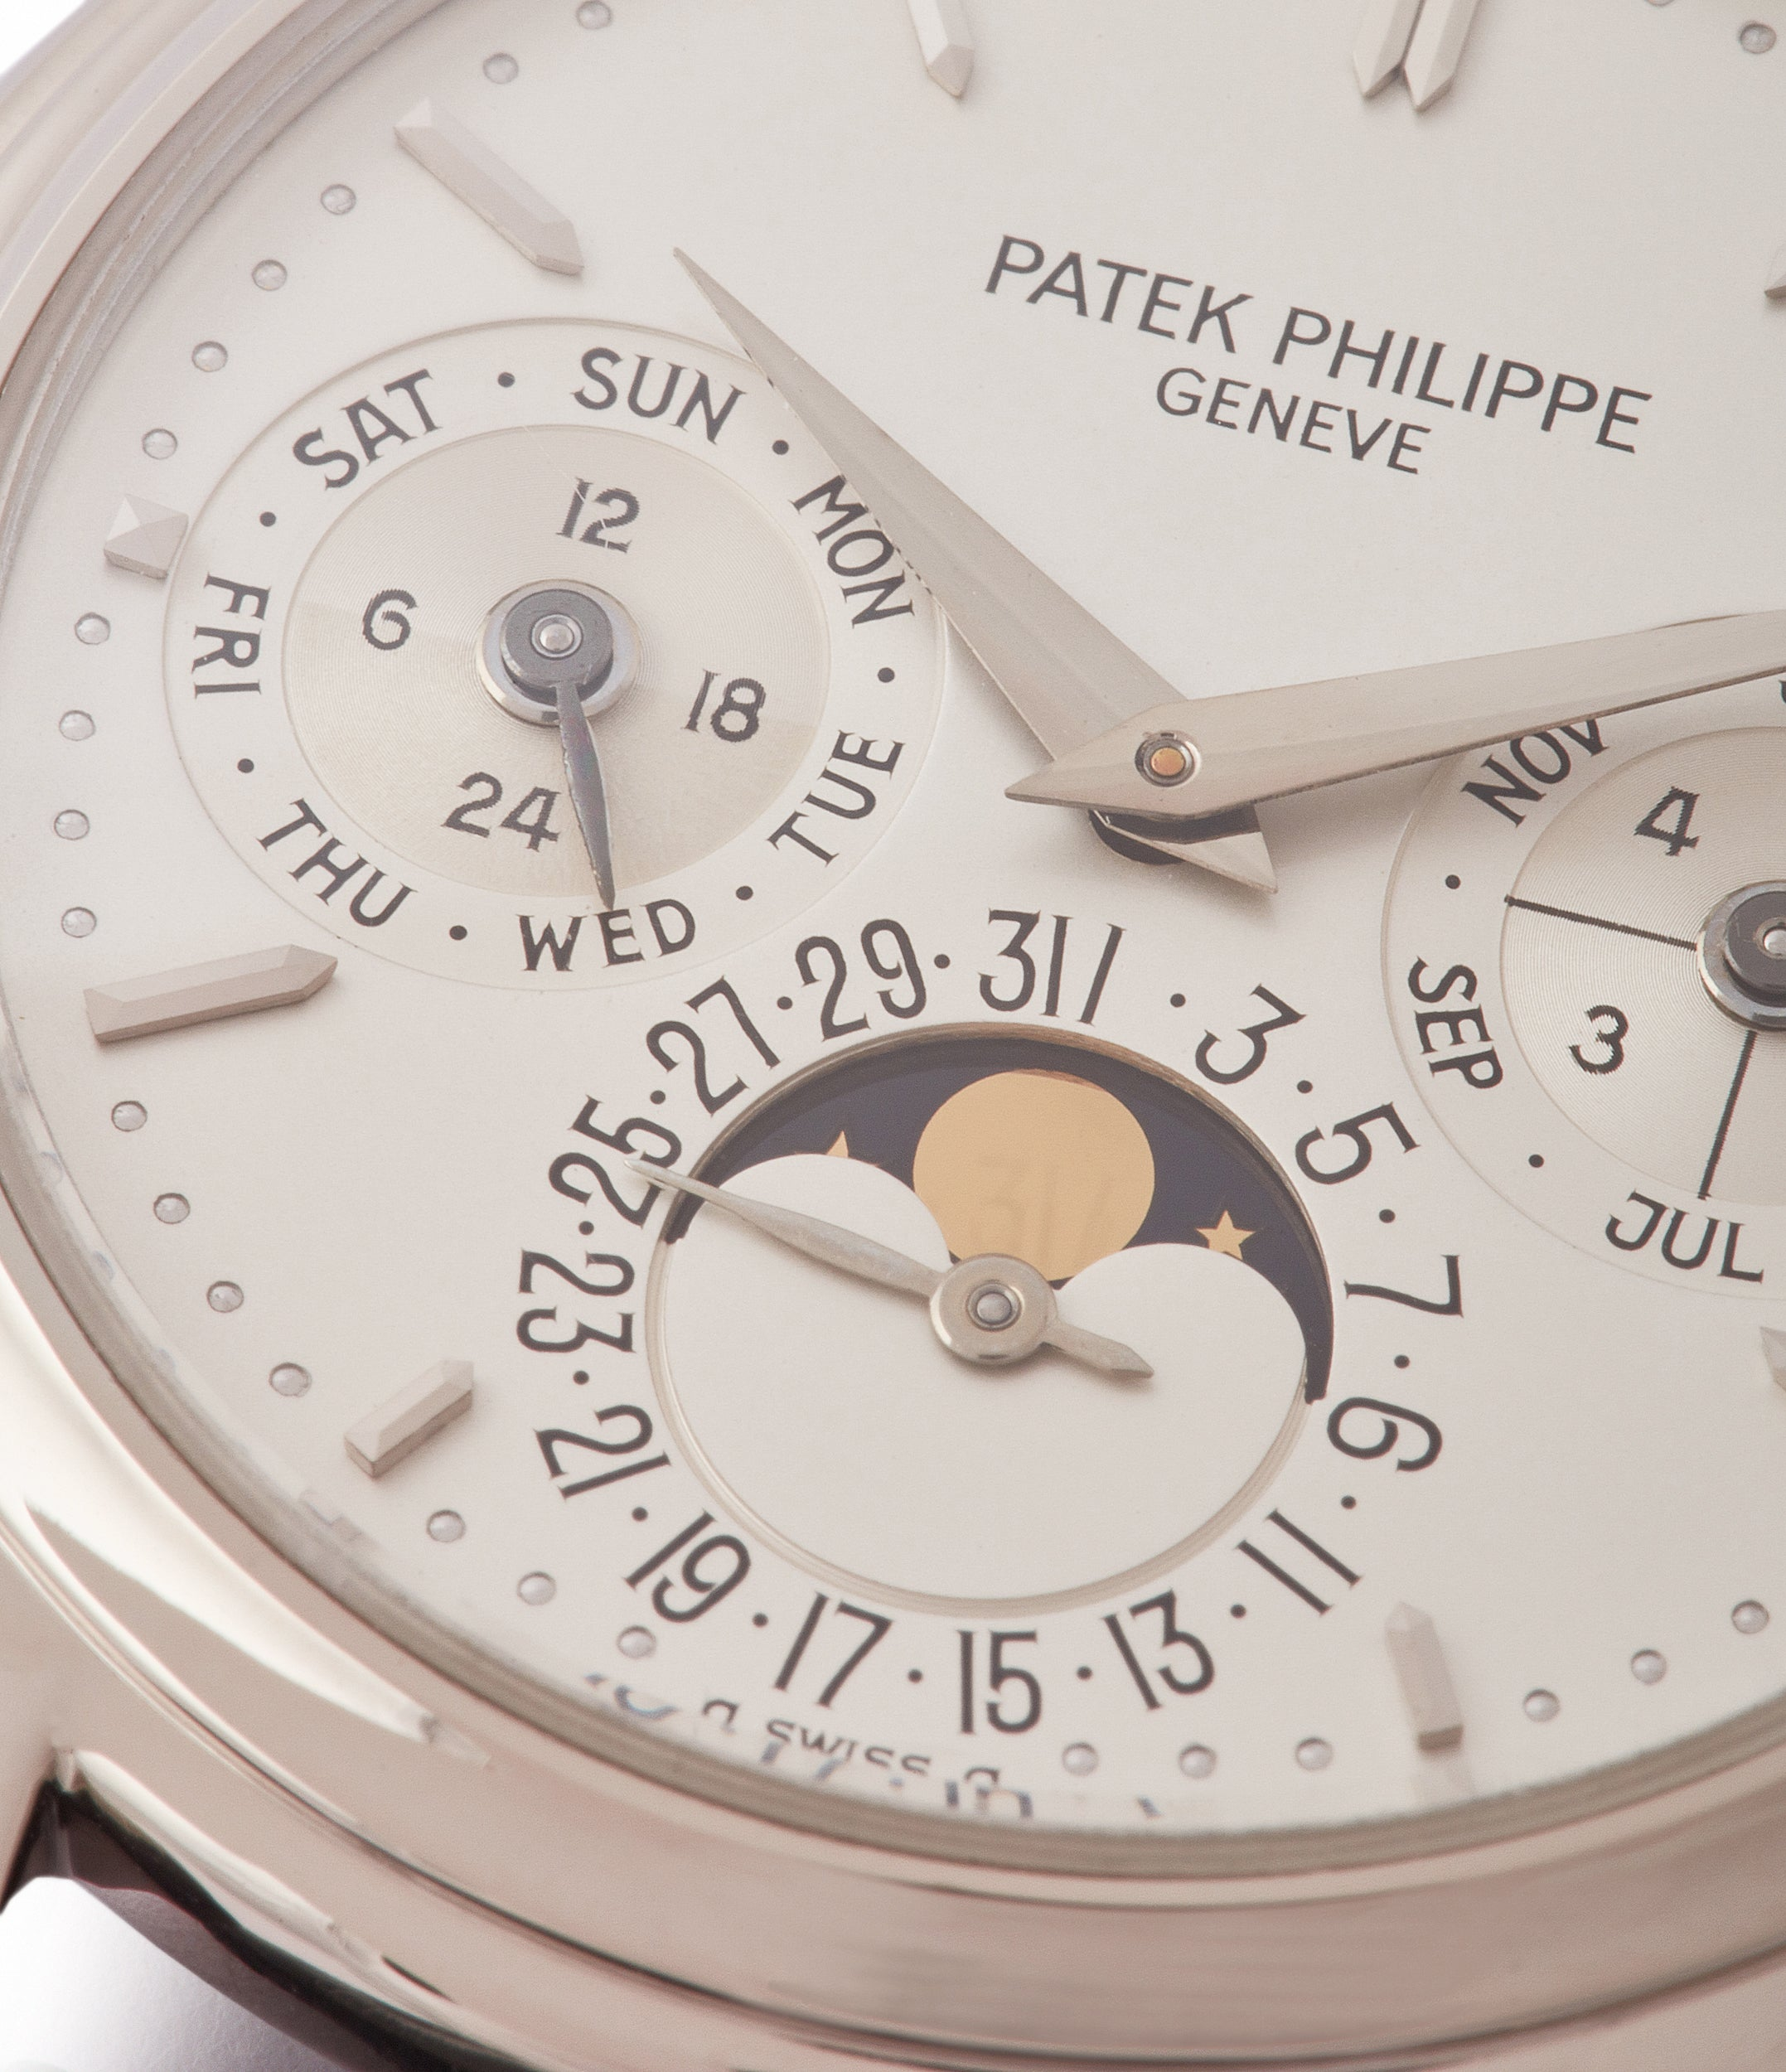 perpetual calendar 3940 Patek Philippe vintage rare watch English dial for sale online at A Collected Man London UK specialist of rare watches